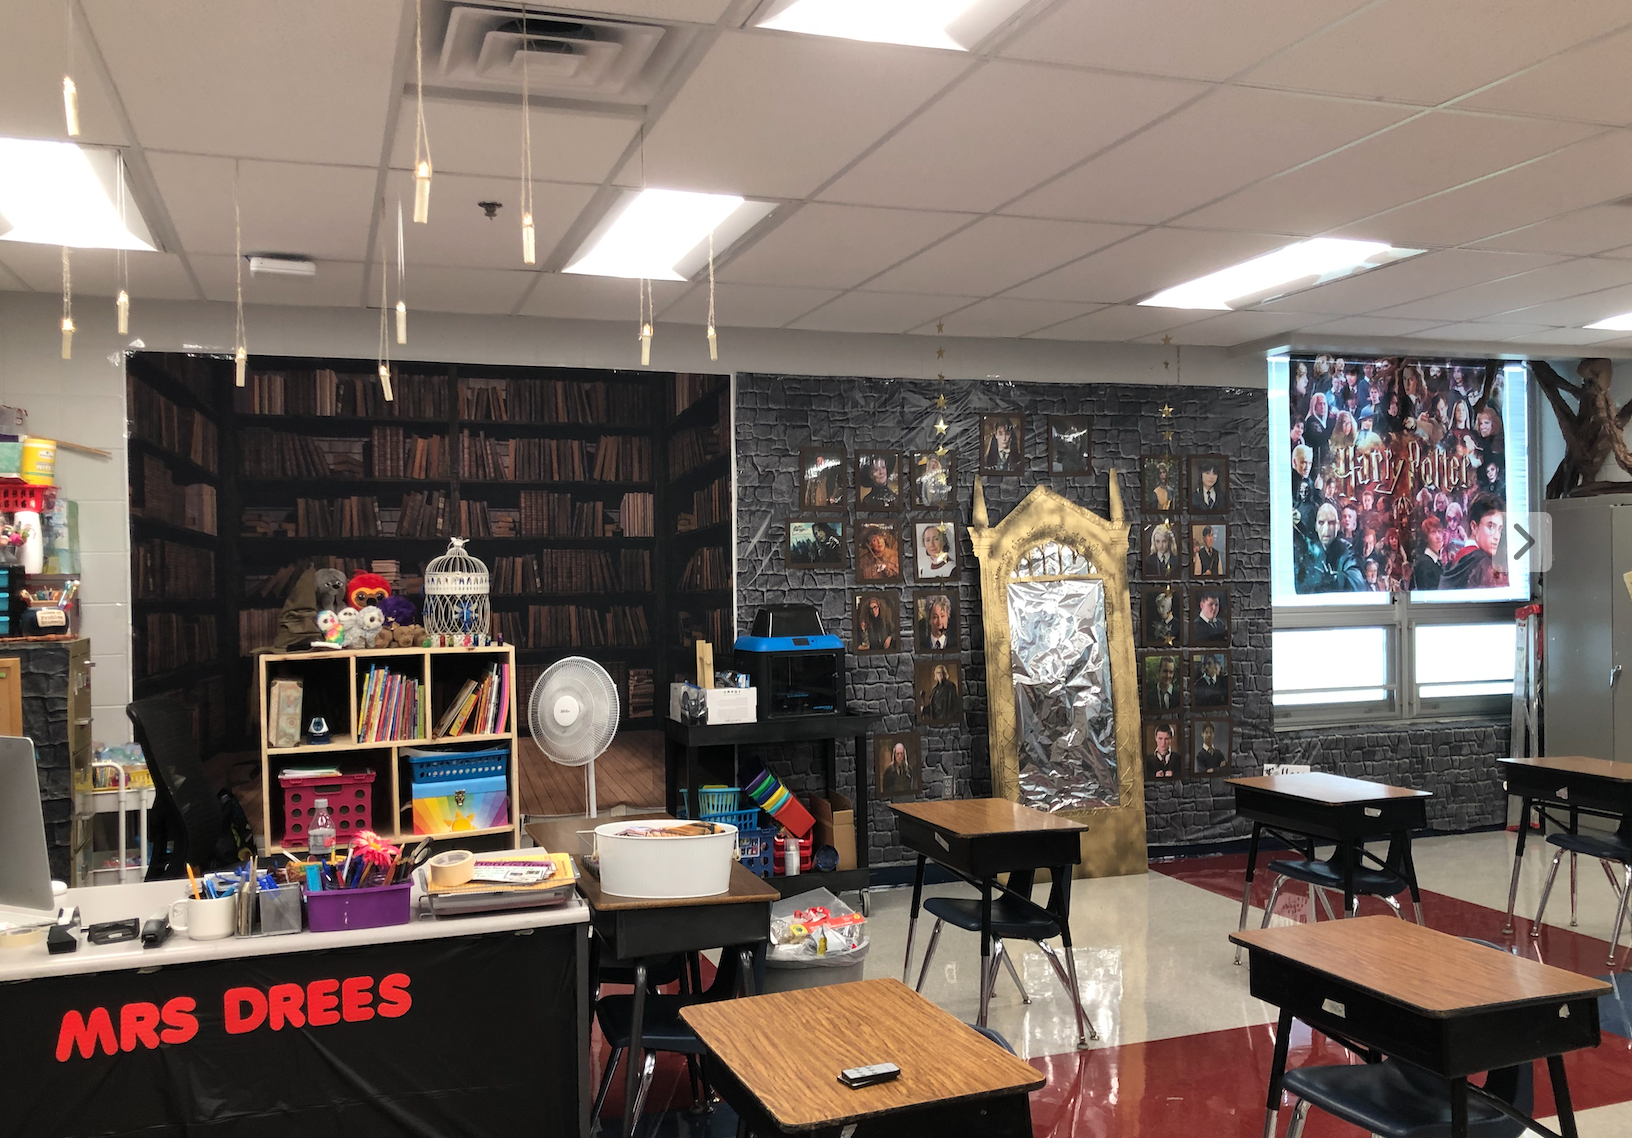 And just a full shot of what the side wall of the classroom looks like.